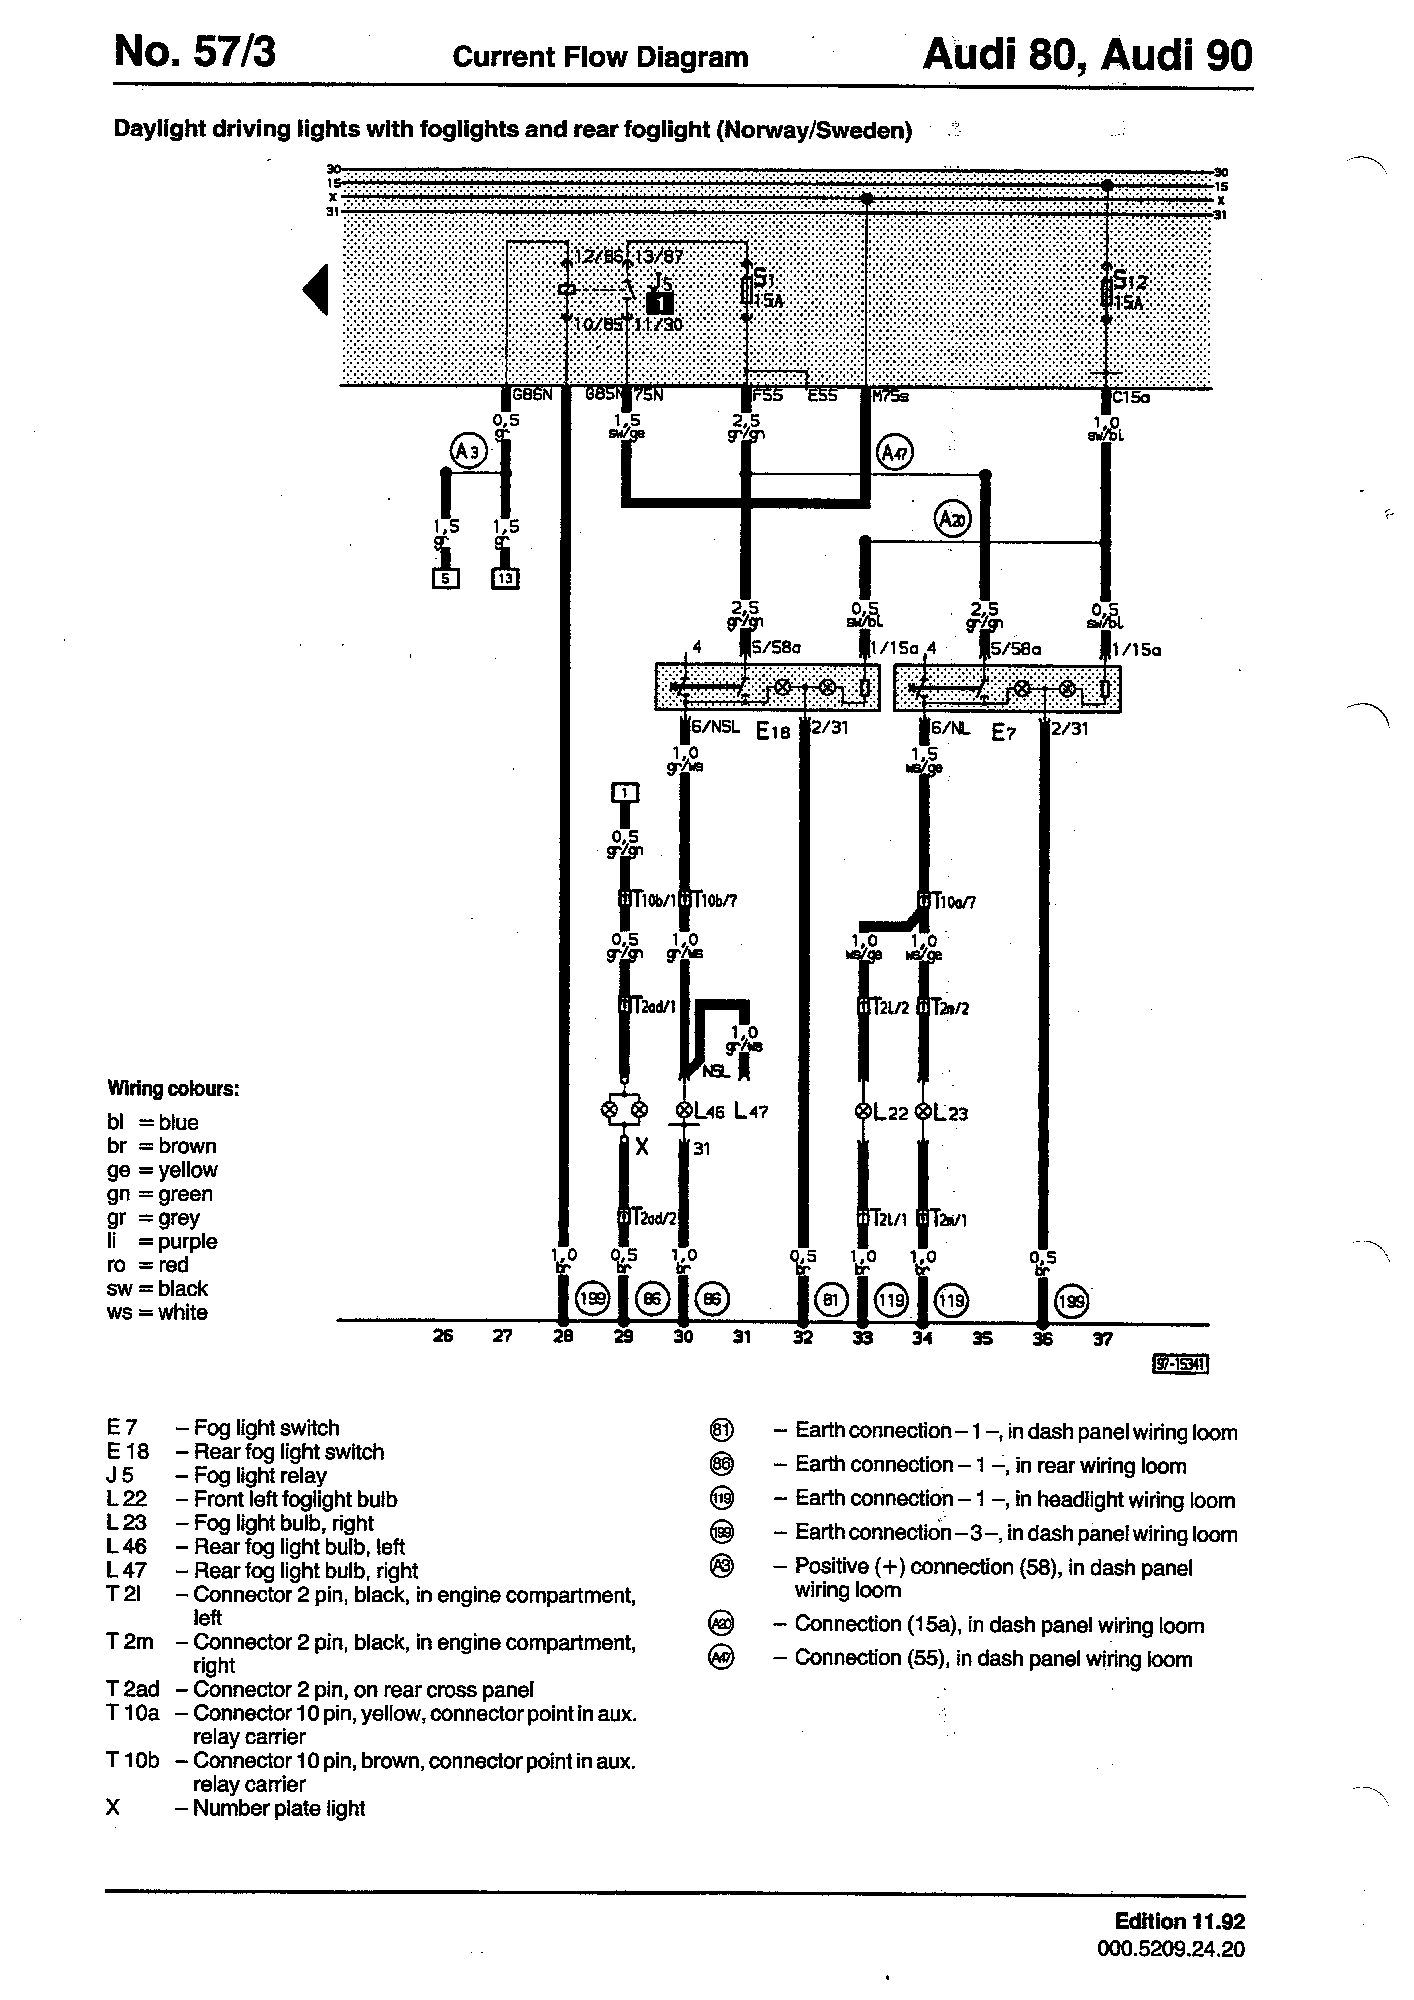 Seat Leon Central Locking Wiring Diagram | Wiring Liry Alfa Romeo Central Locking Wiring Diagram on alfa romeo blueprints, alfa romeo spider, alfa romeo steering, alfa romeo transmission, alfa romeo cylinder head, alfa romeo chassis, alfa romeo seats, alfa romeo body, alfa romeo all models, alfa romeo radio wiring, 1995 ford f-250 transmission diagrams, alfa romeo drawings, alfa romeo transaxle, alfa romeo accessories, alfa romeo repair manuals, alfa romeo paint codes, alfa romeo rear axle, alfa romeo engine,